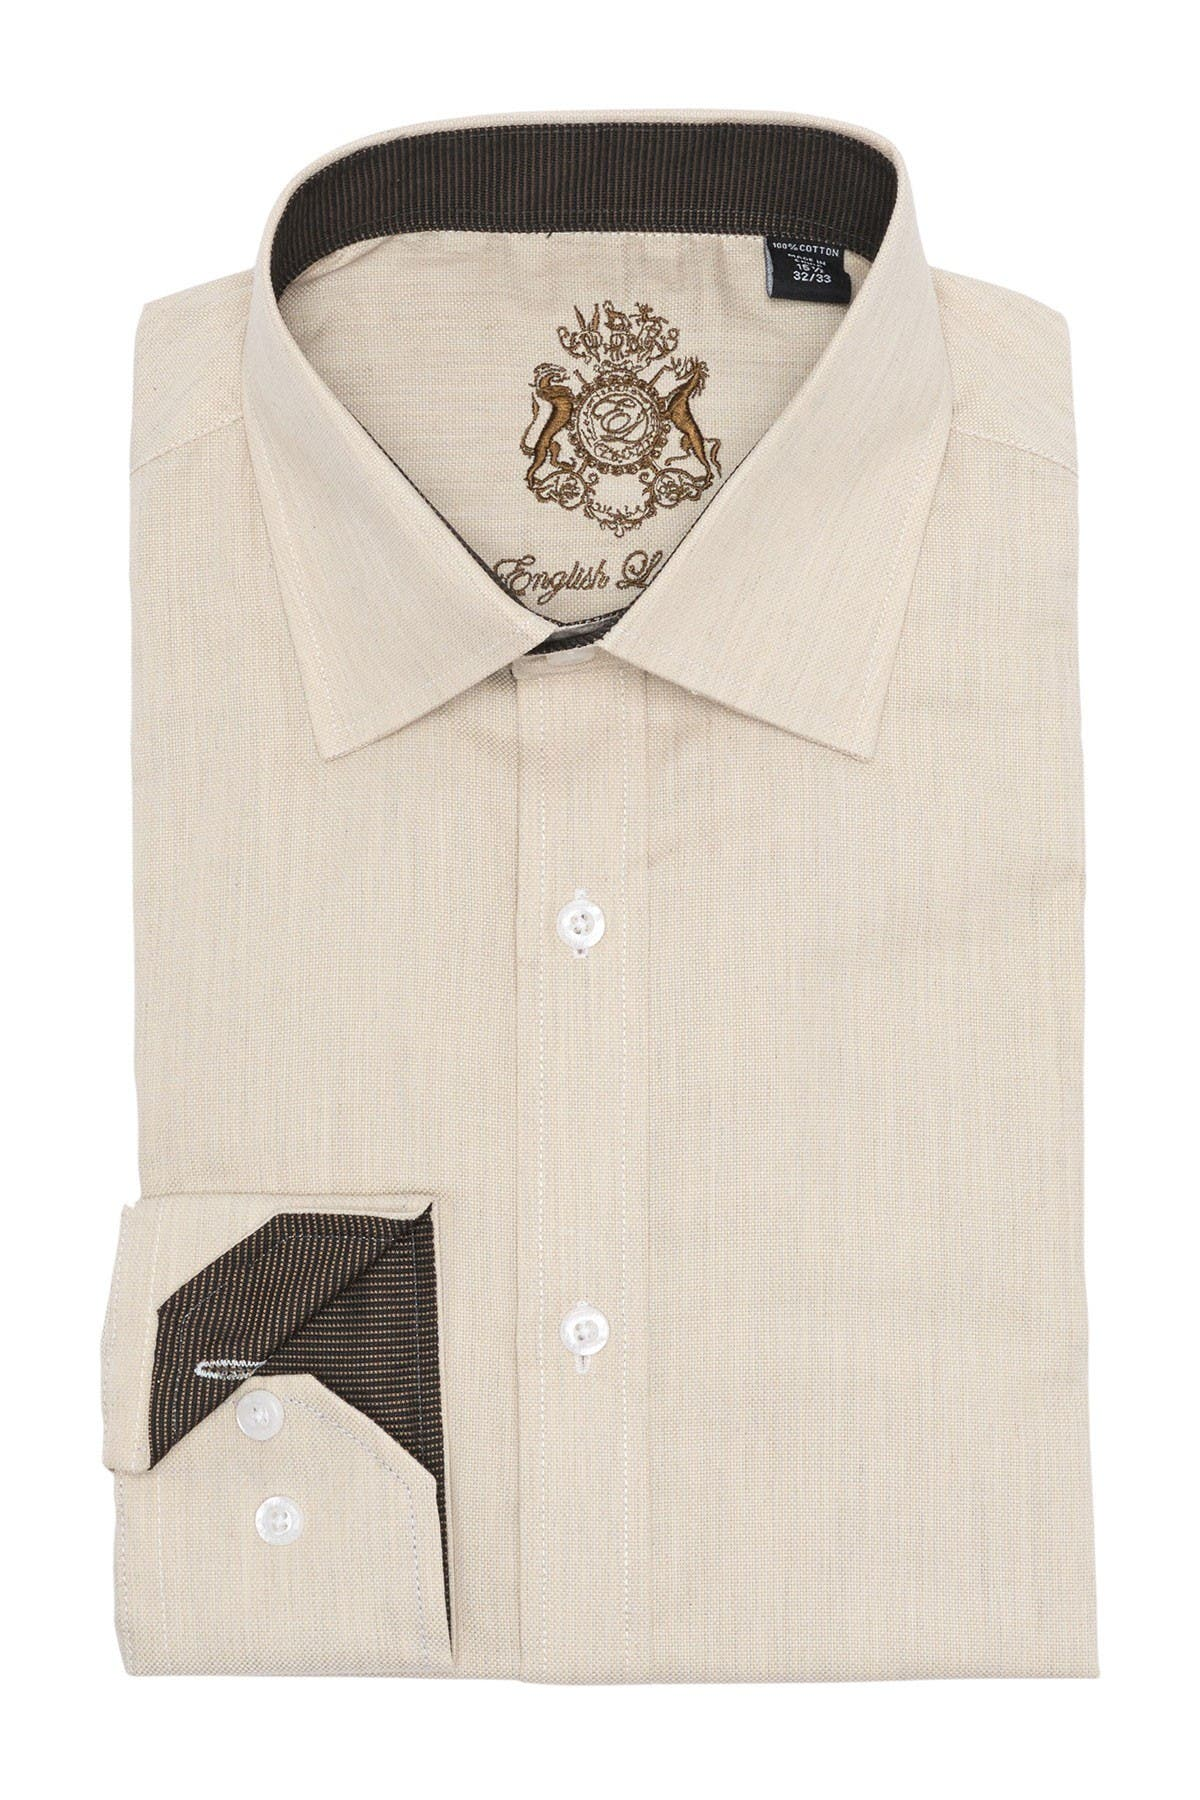 Image of English Laundry Regular Fit Textured Solid Dress Shirt